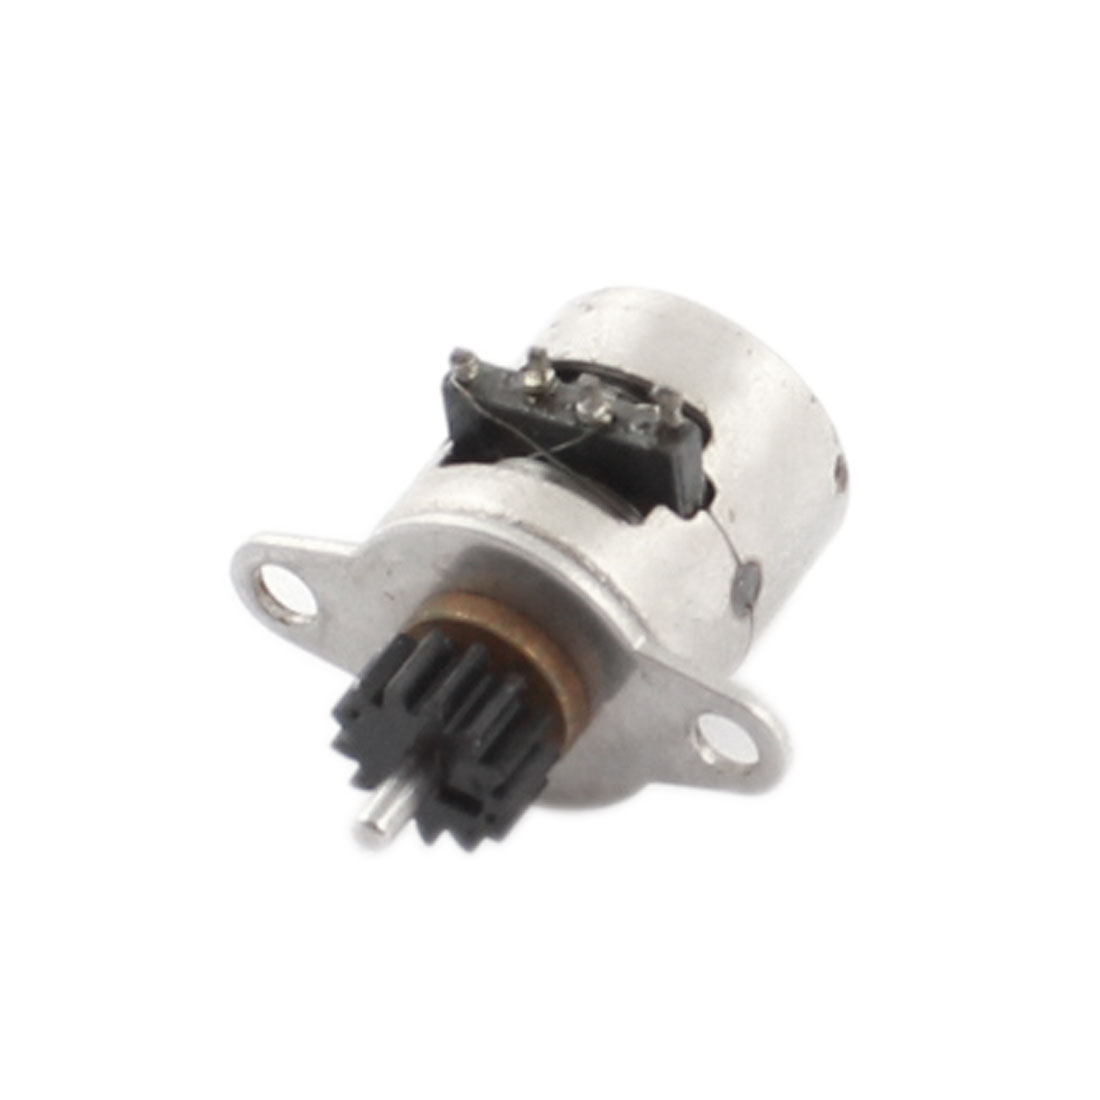 DC 3V 0.4mA 8mm Diameter 2-phase 4-wire Round Shaped Stepper Stepping Motor Replacement 26000RMP